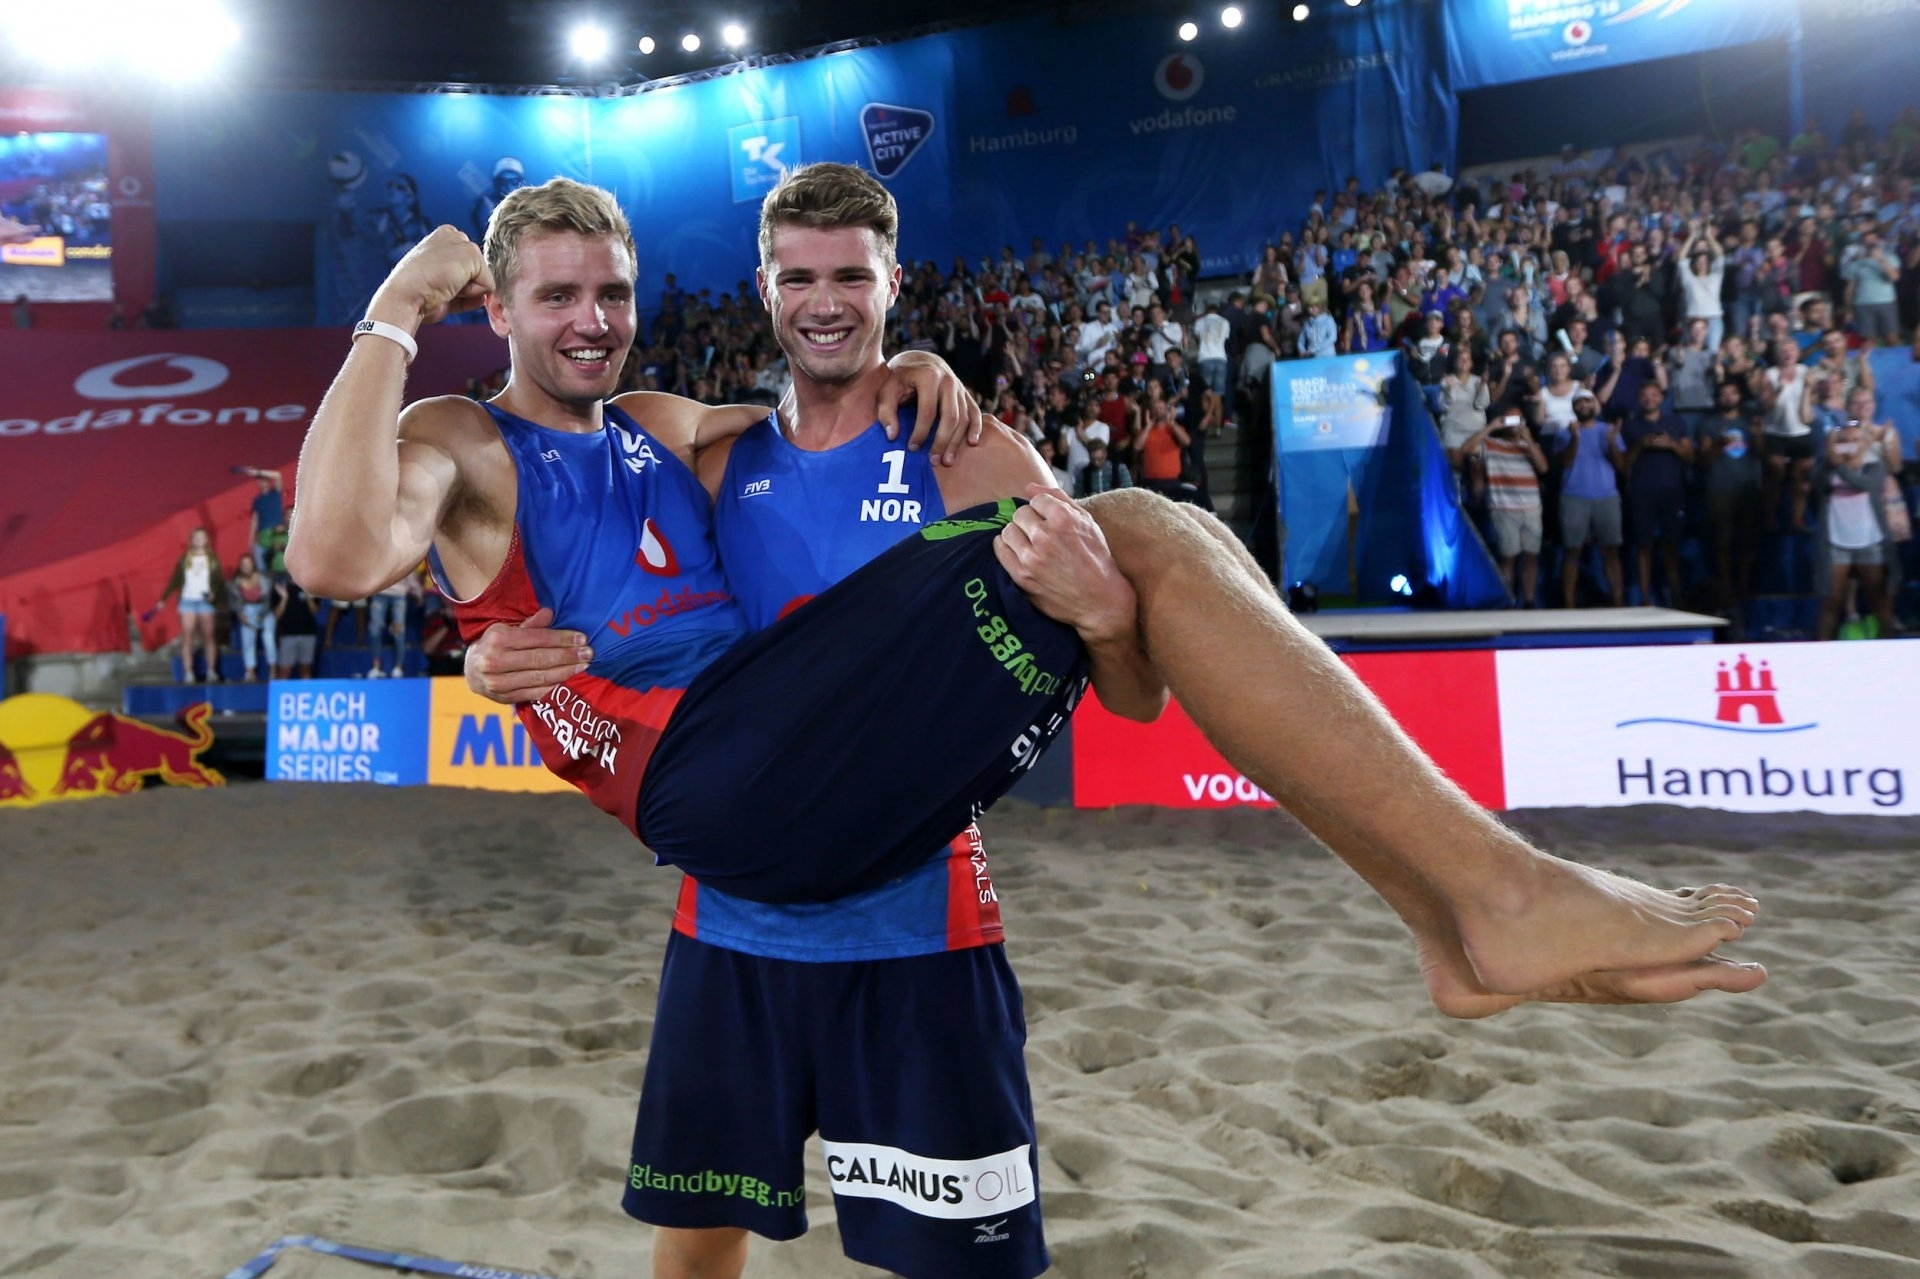 Anders and Christian celebrate their brilliant victory